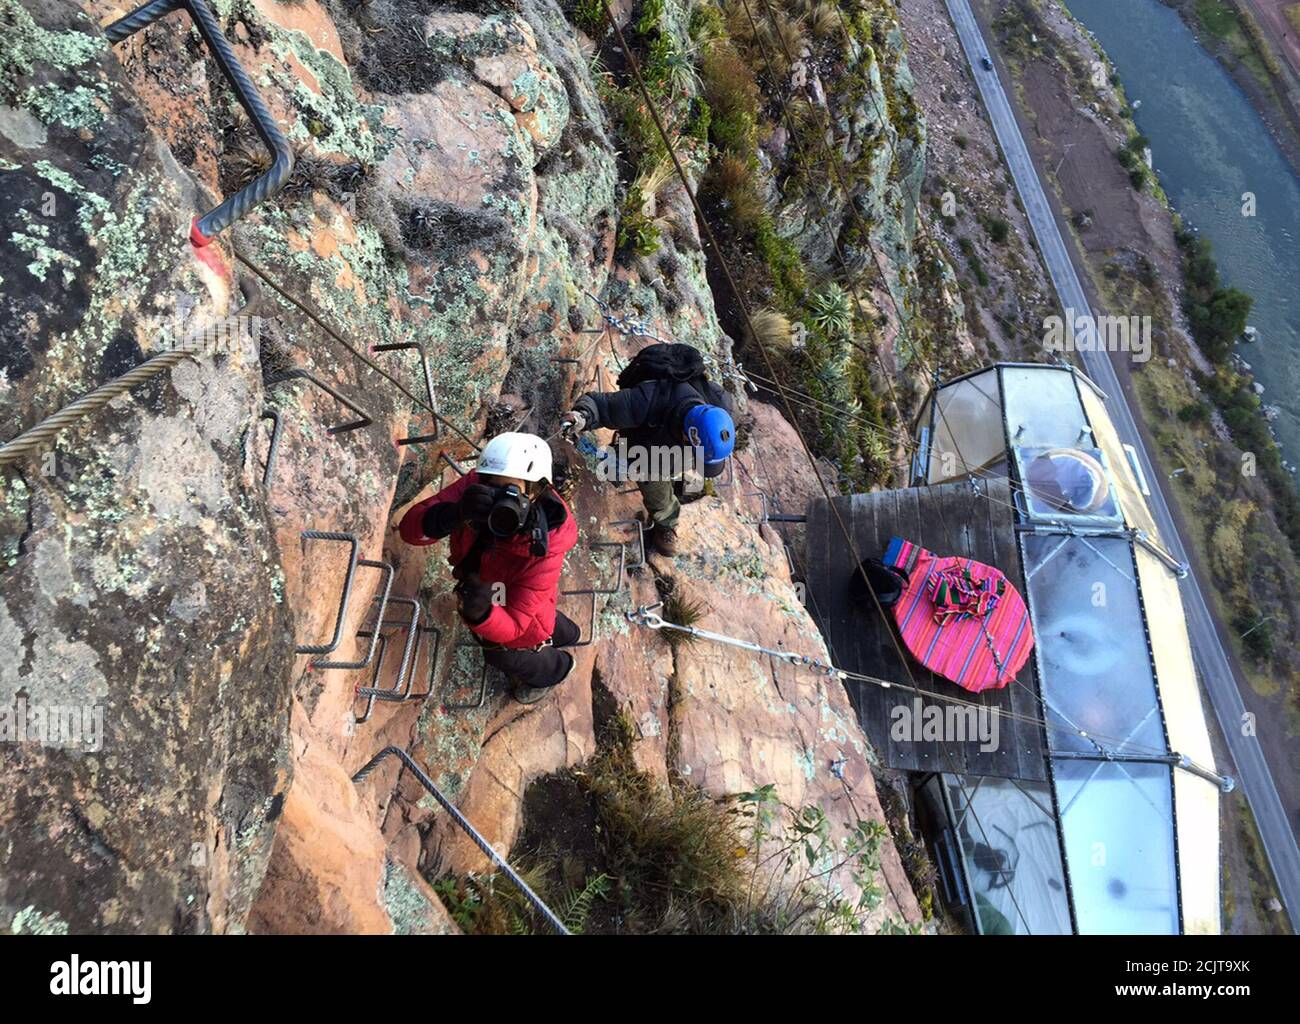 Reuters Photographer Pilar Olivares Documents The Skylodge Adventure Suites In The Sacred Valley In Cuzco Peru August 14 2015 Tourists Taking On An Arduous Climb Up The Steep Cliff Face Of Peru S